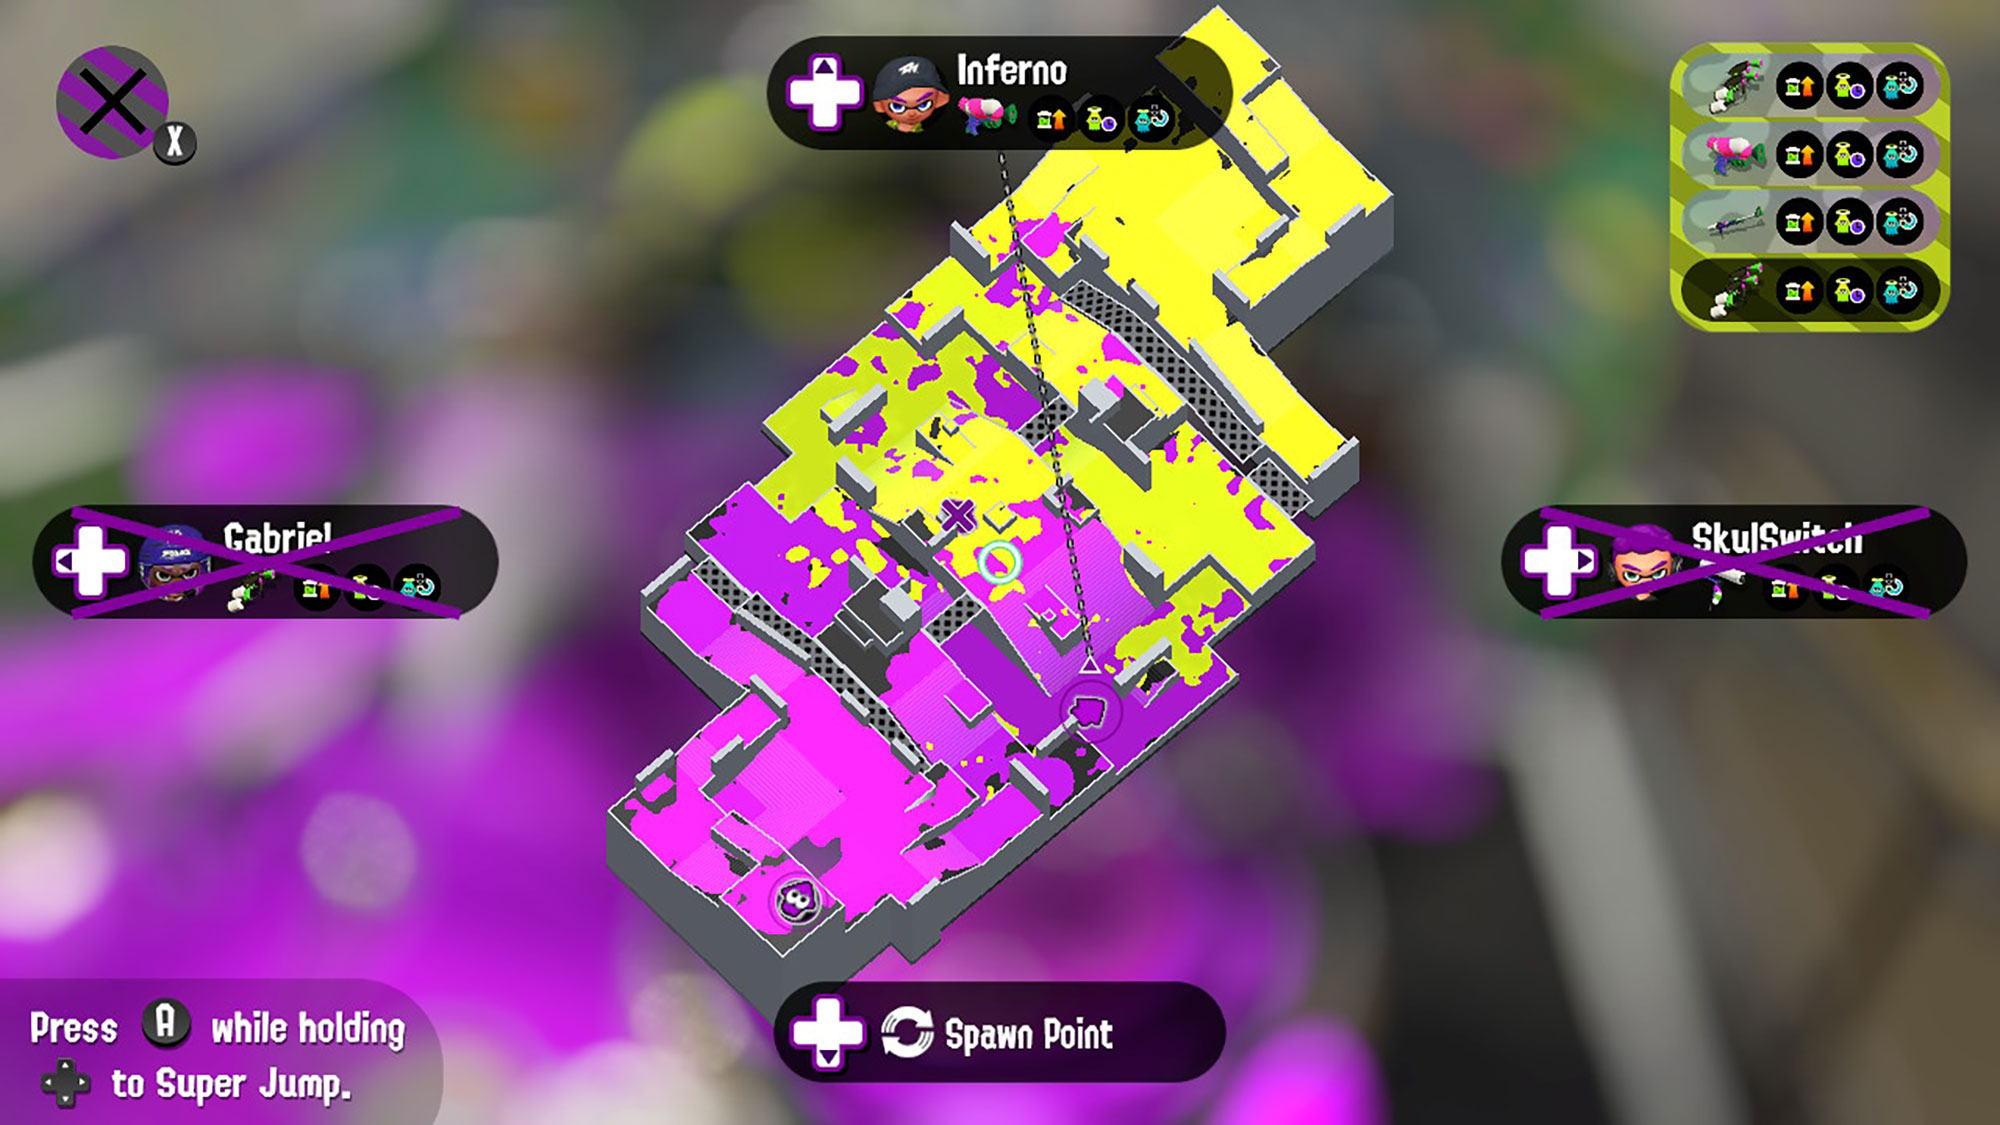 You can get a pretty good idea of who is winning when looking at the map